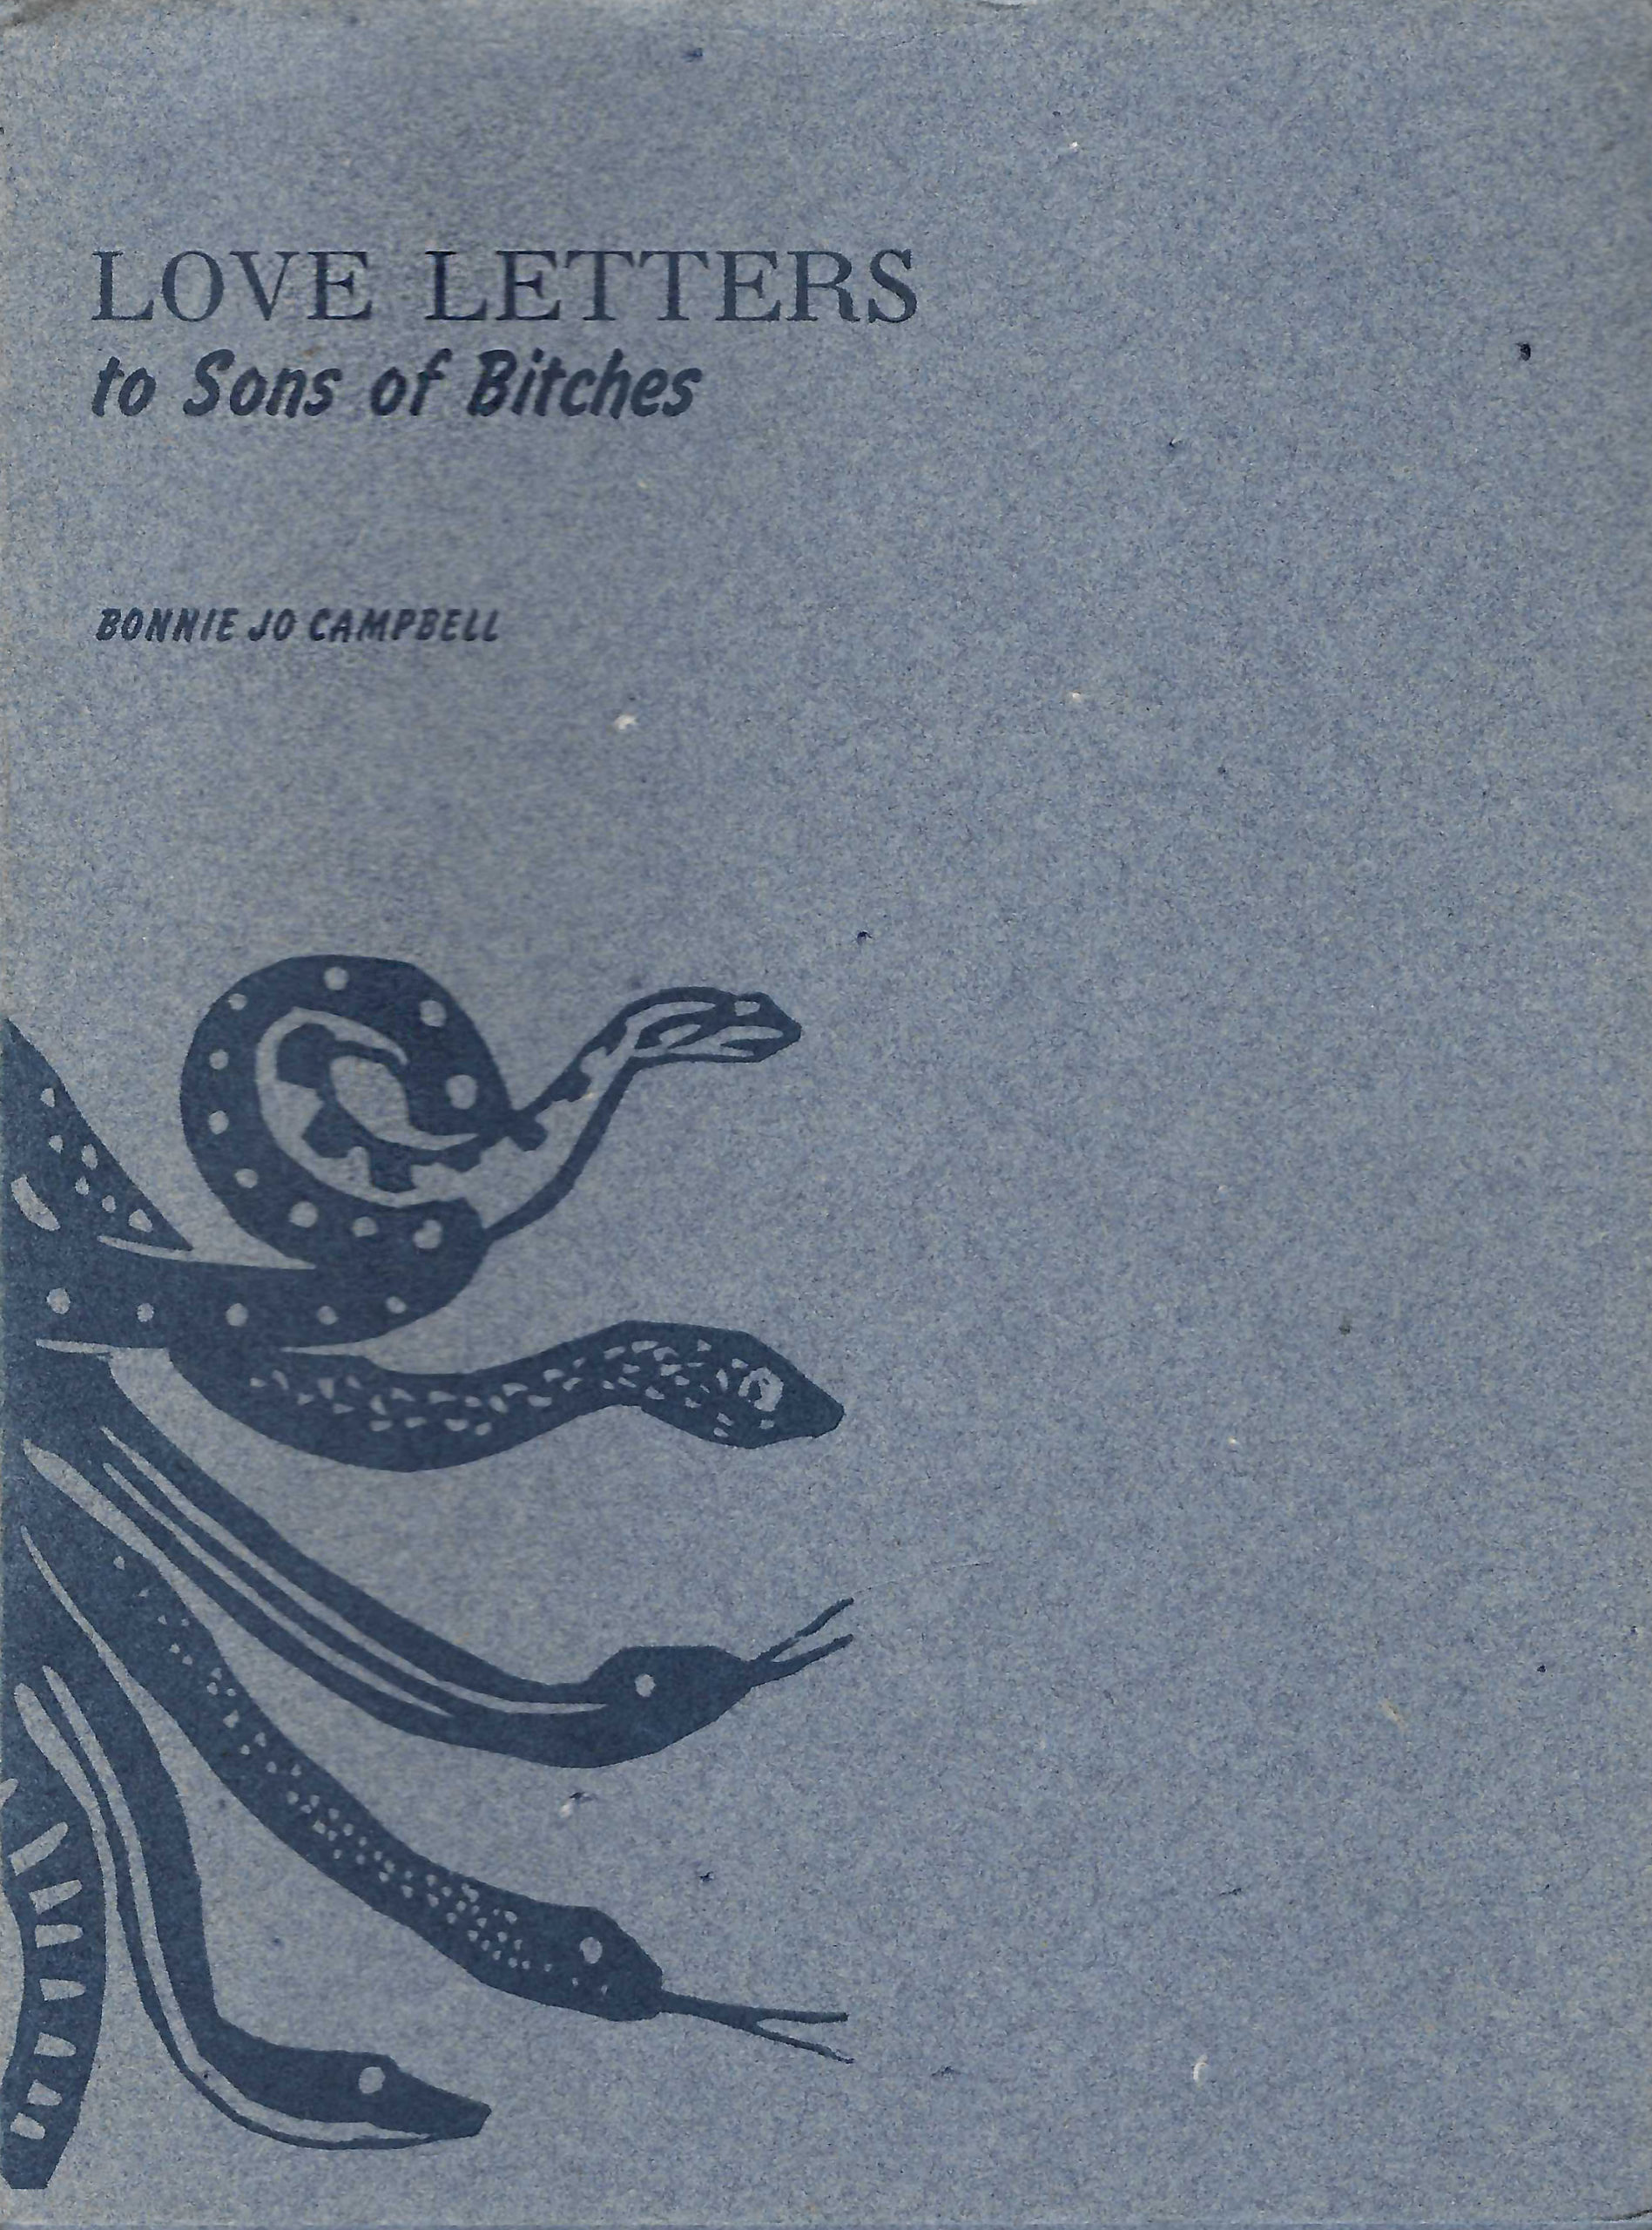 blue book cover with snakes